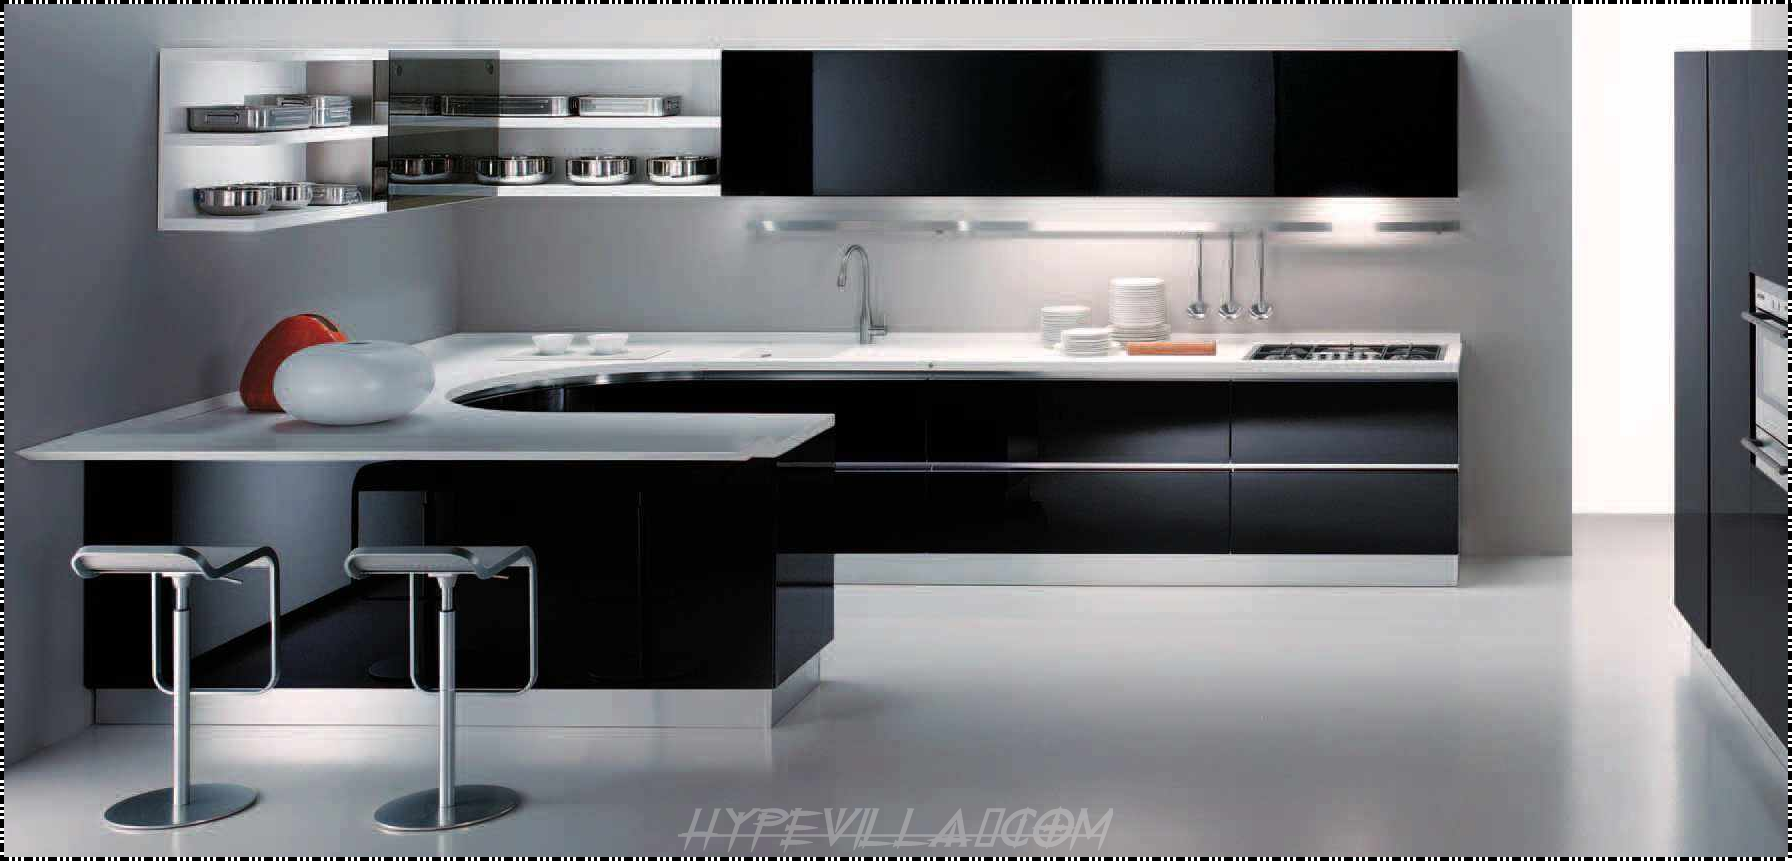 incredible black modern kitchen cabinets with white countertop wallmounted shelves two stainless steel bar stools